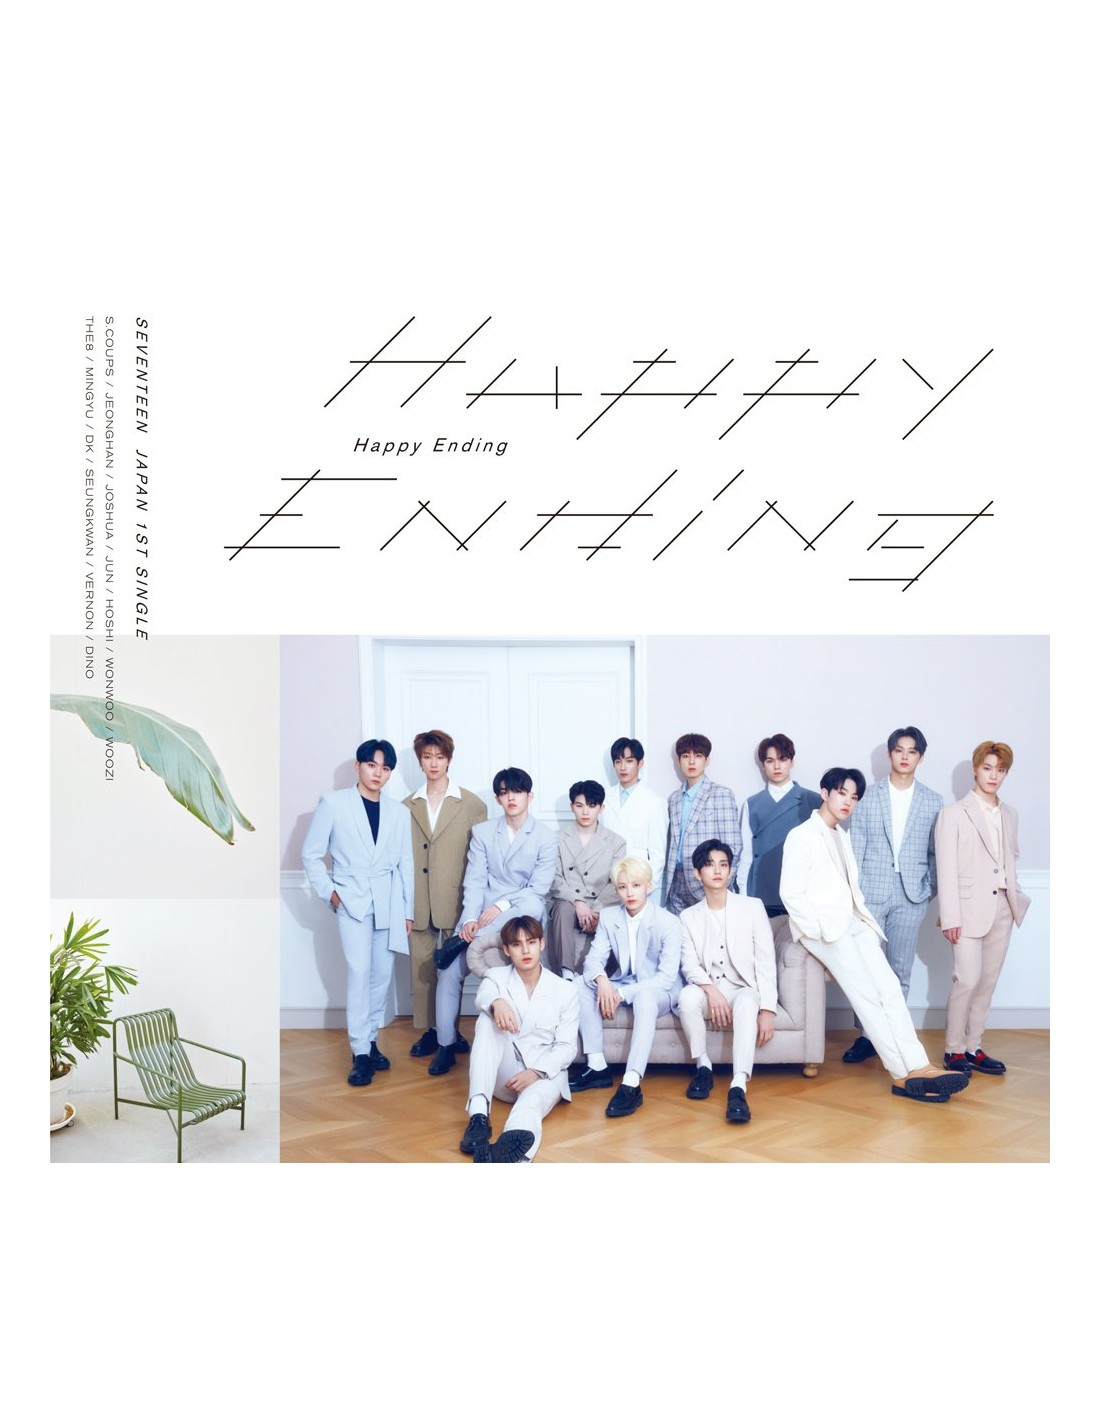 [Japanese Edition] SEVENTEEN - Happy Ending (1st Limited Edition ver B) CD